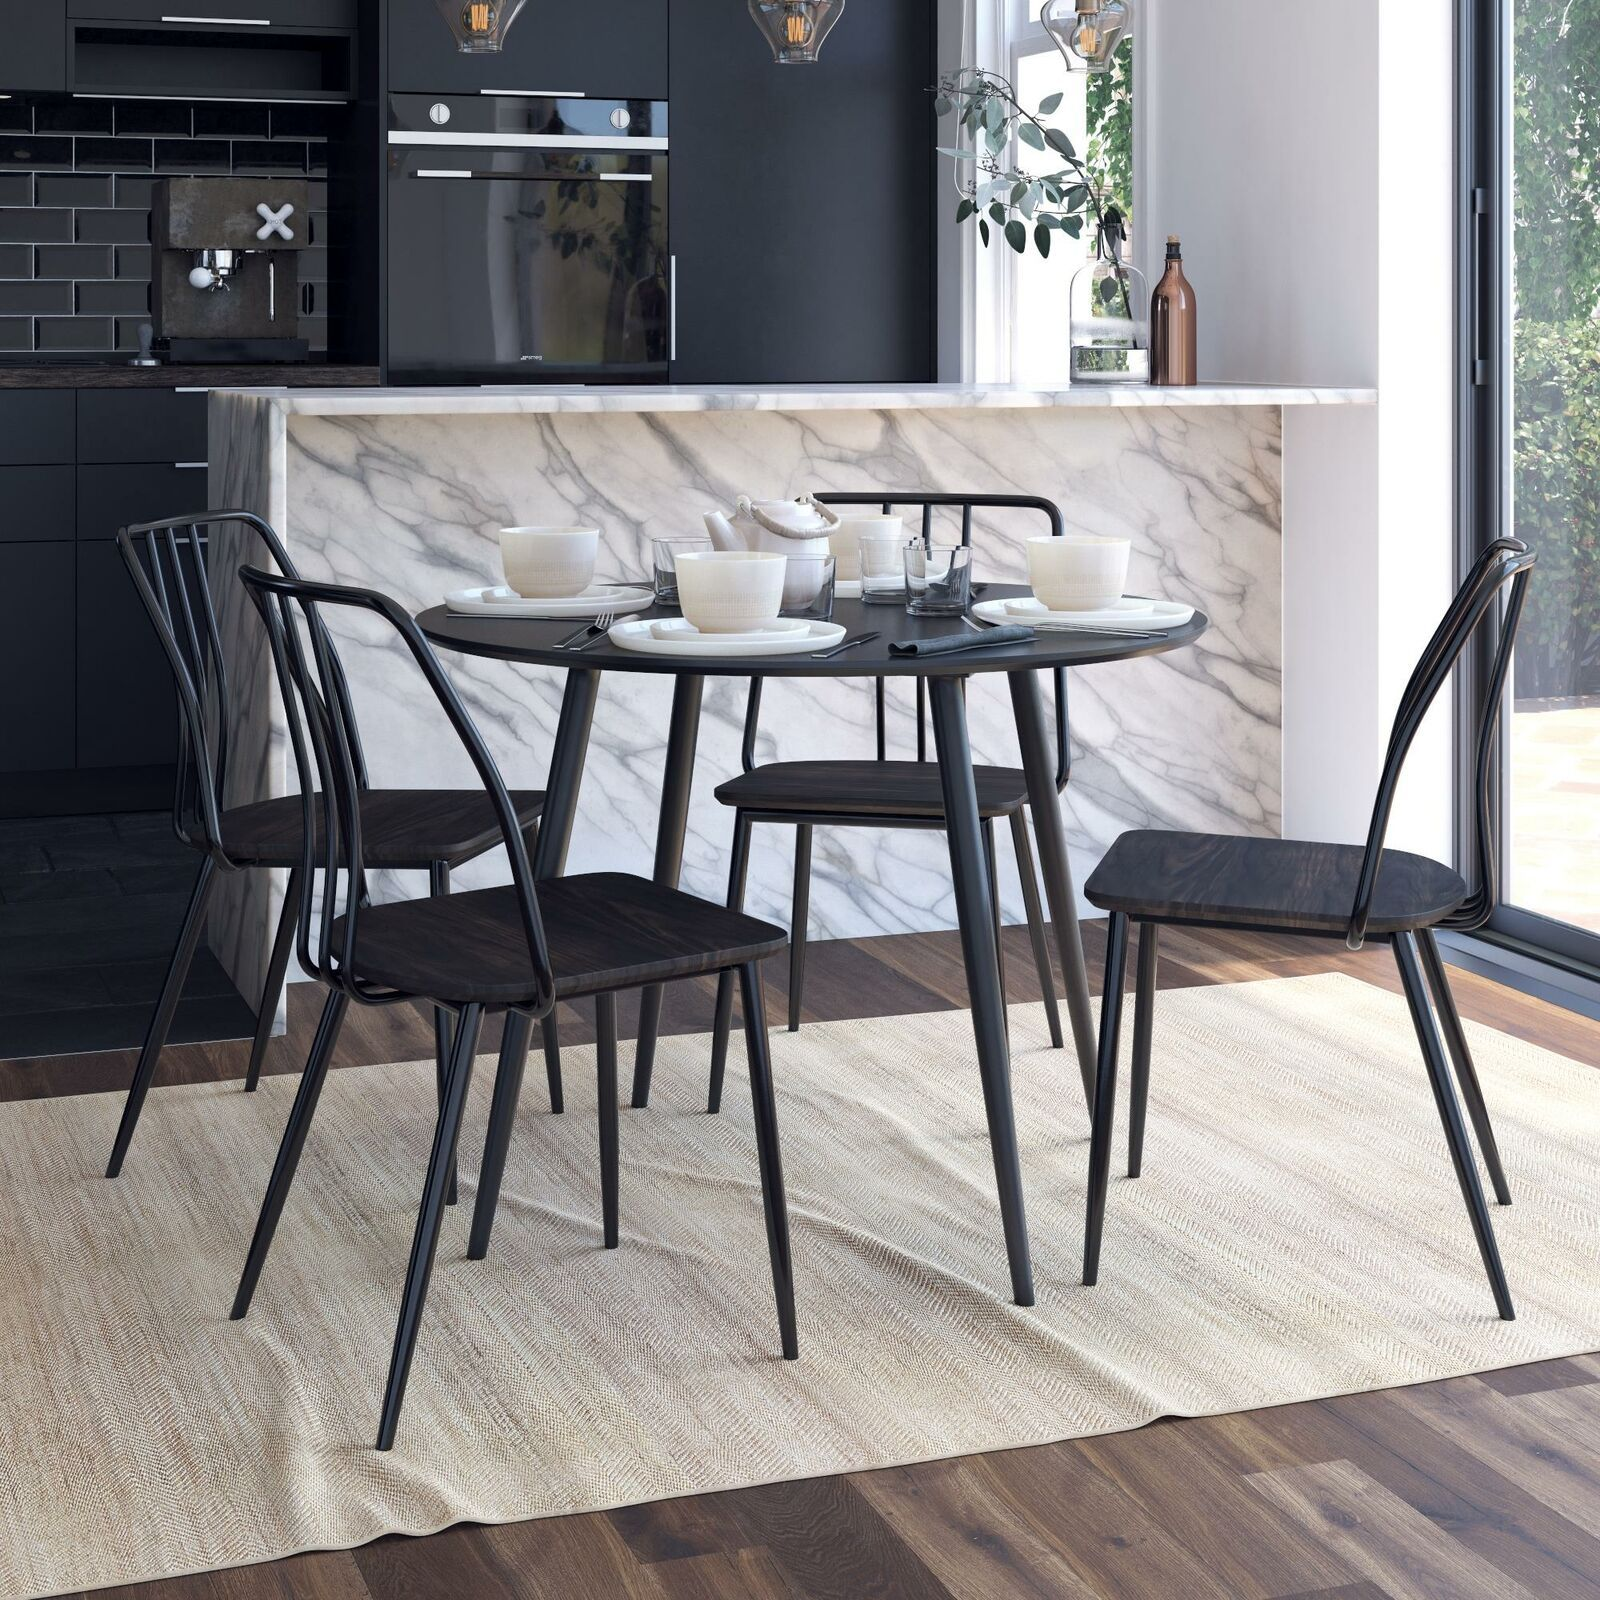 Realrooms 5 Piece Nora Round Dining Table Set With Colton Dining